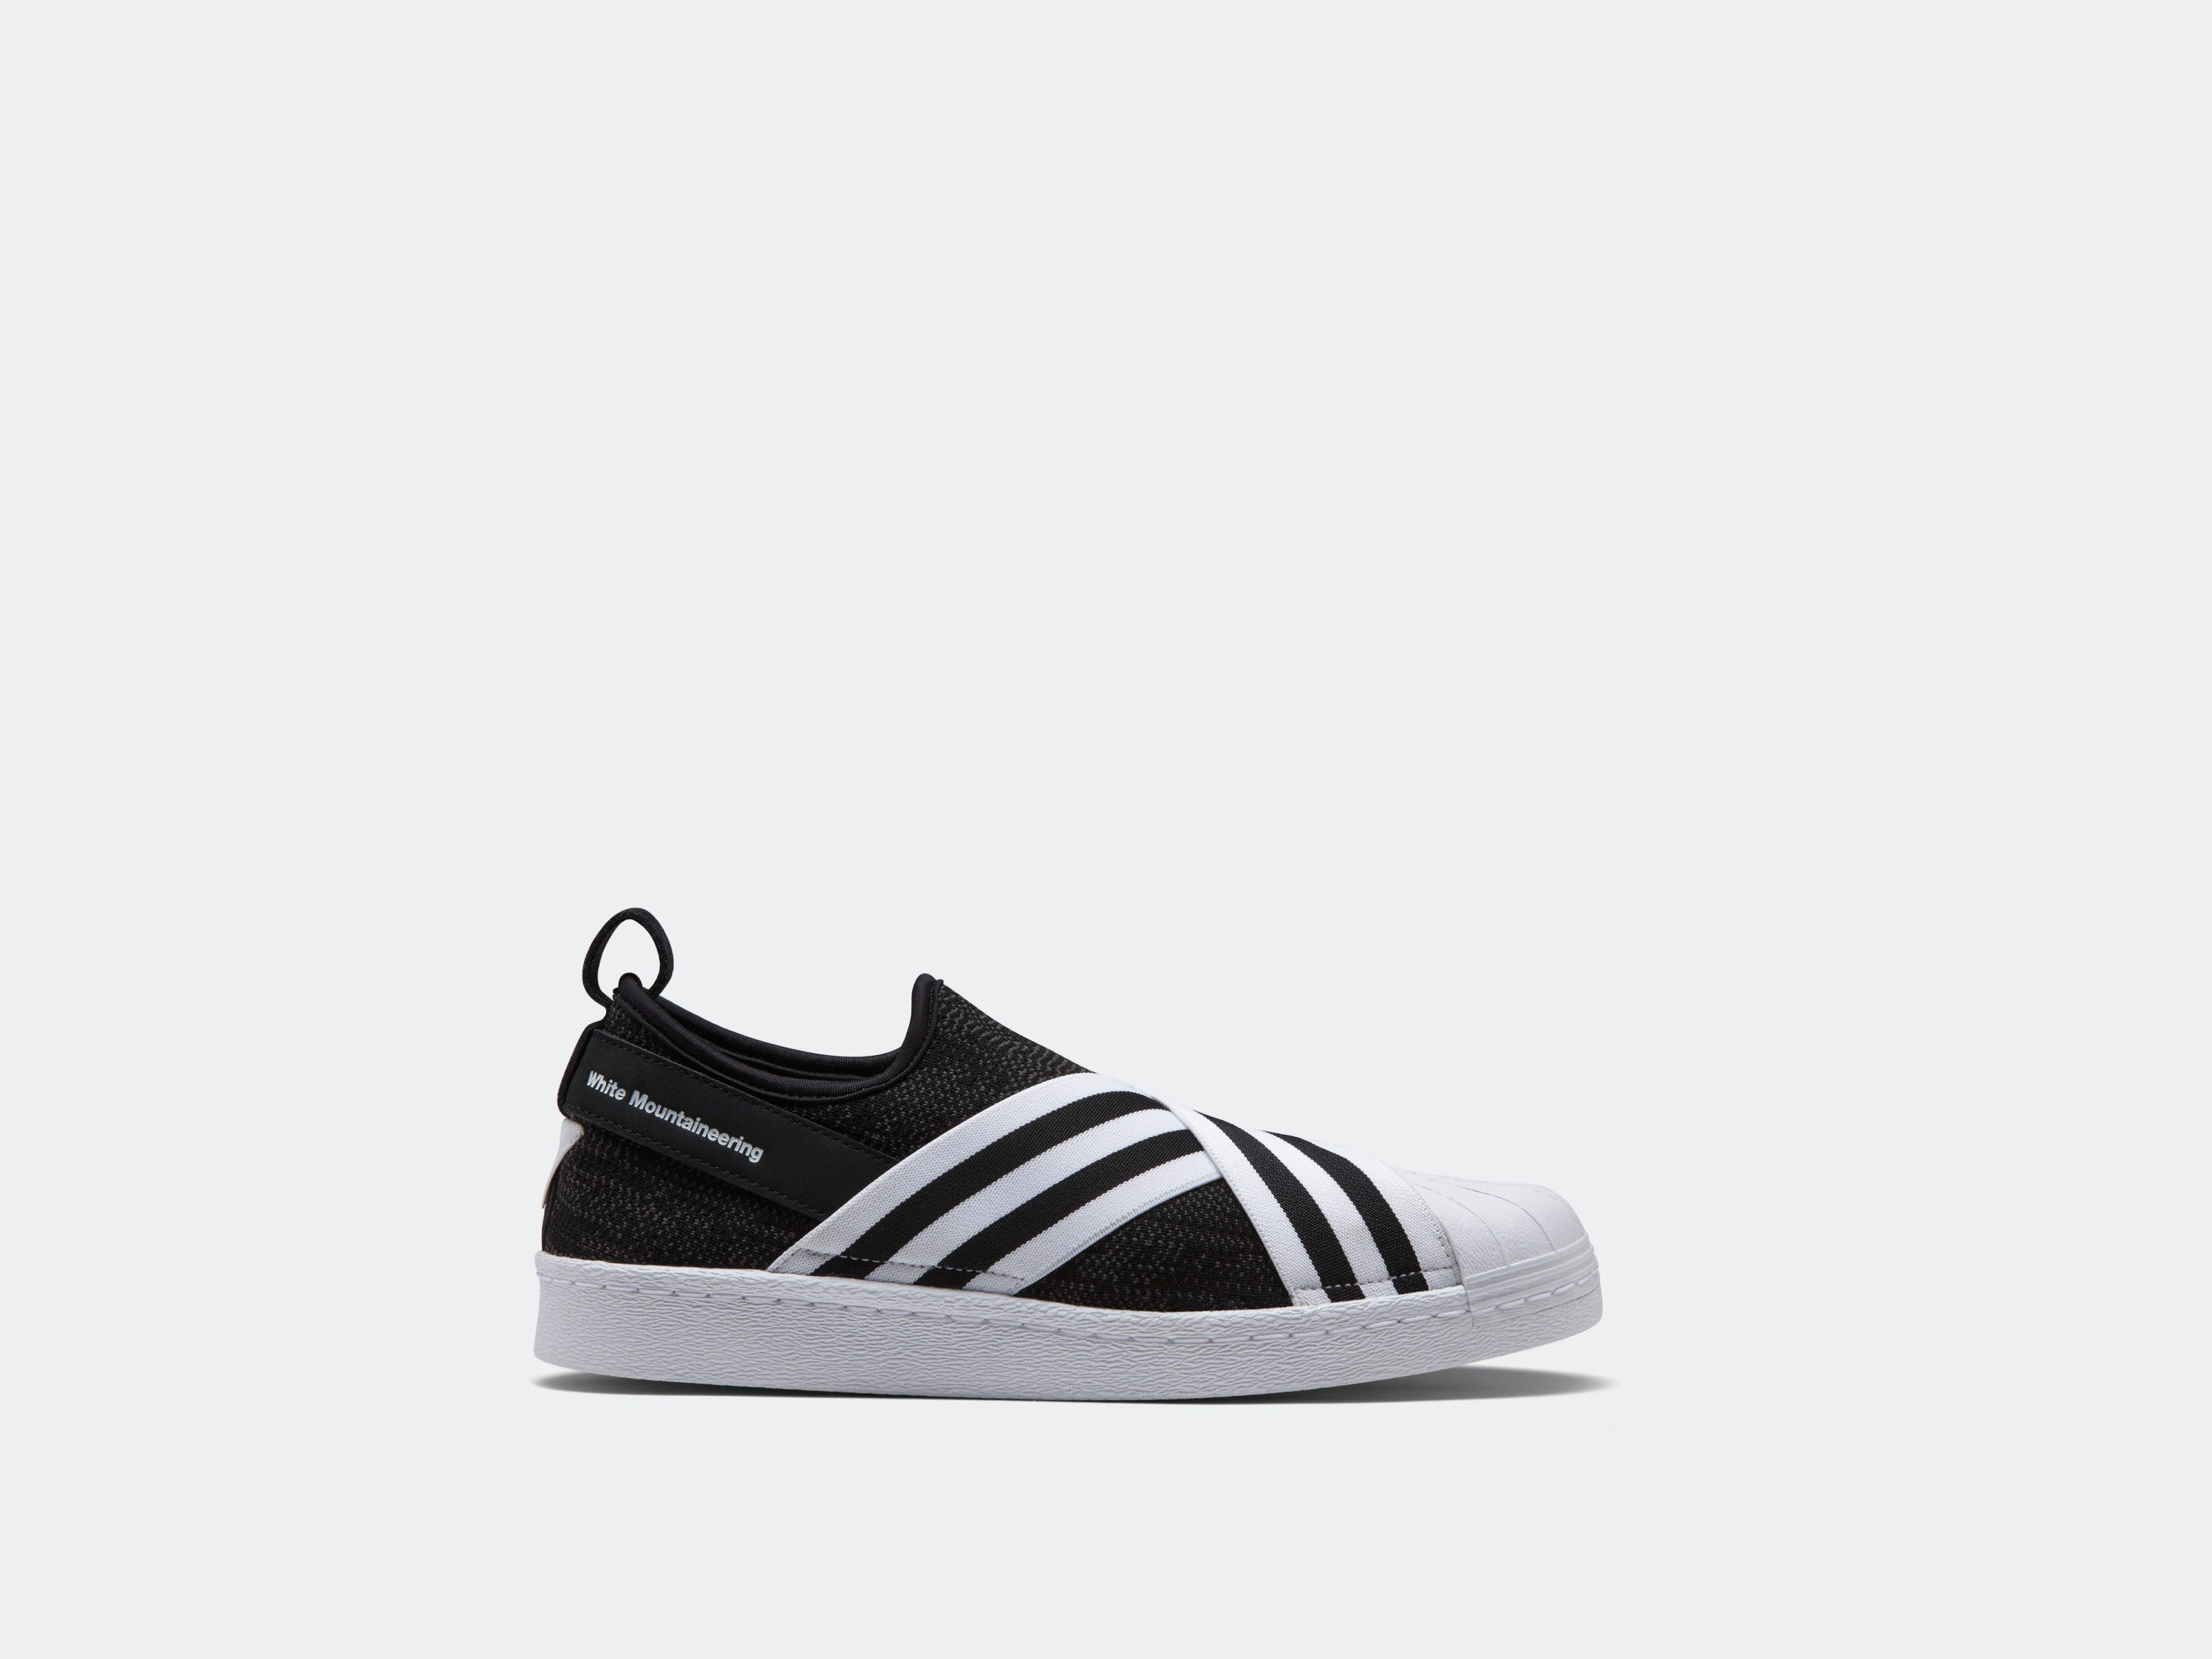 """White Mountaineering x adidas Superstar Slip-On """"Injection"""" Pack"""